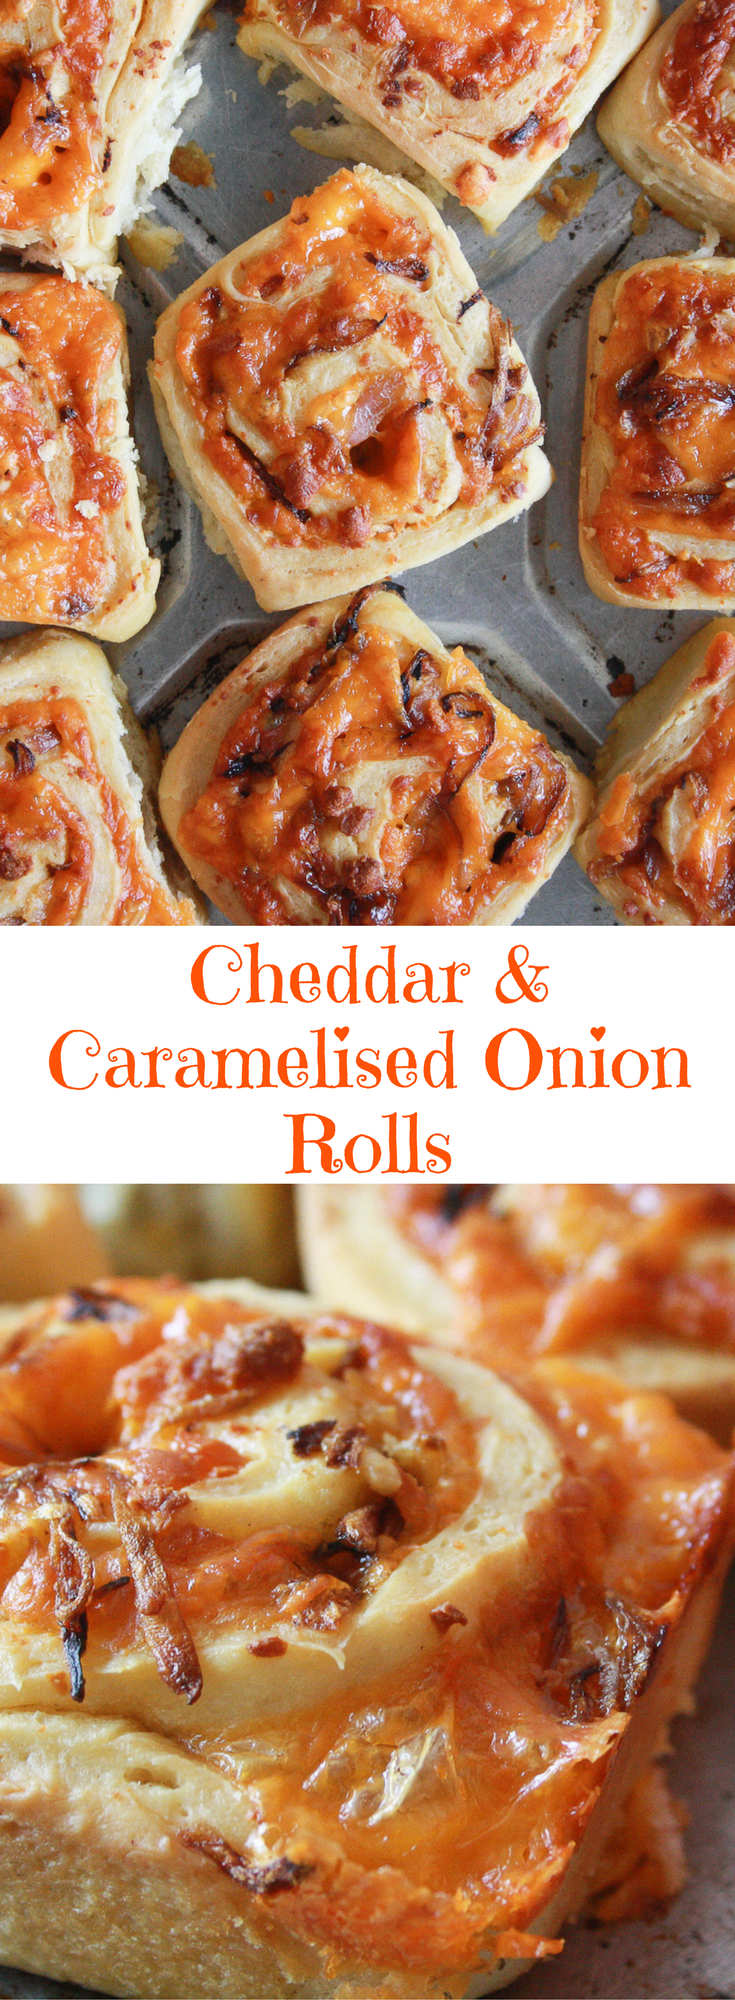 Soft and fluffy, eggless, savoury rolls filled with orange cheddar and caramelised onions! #Caramelised #Cheddar #Eggless #Onion #Rolls #savoury Baking